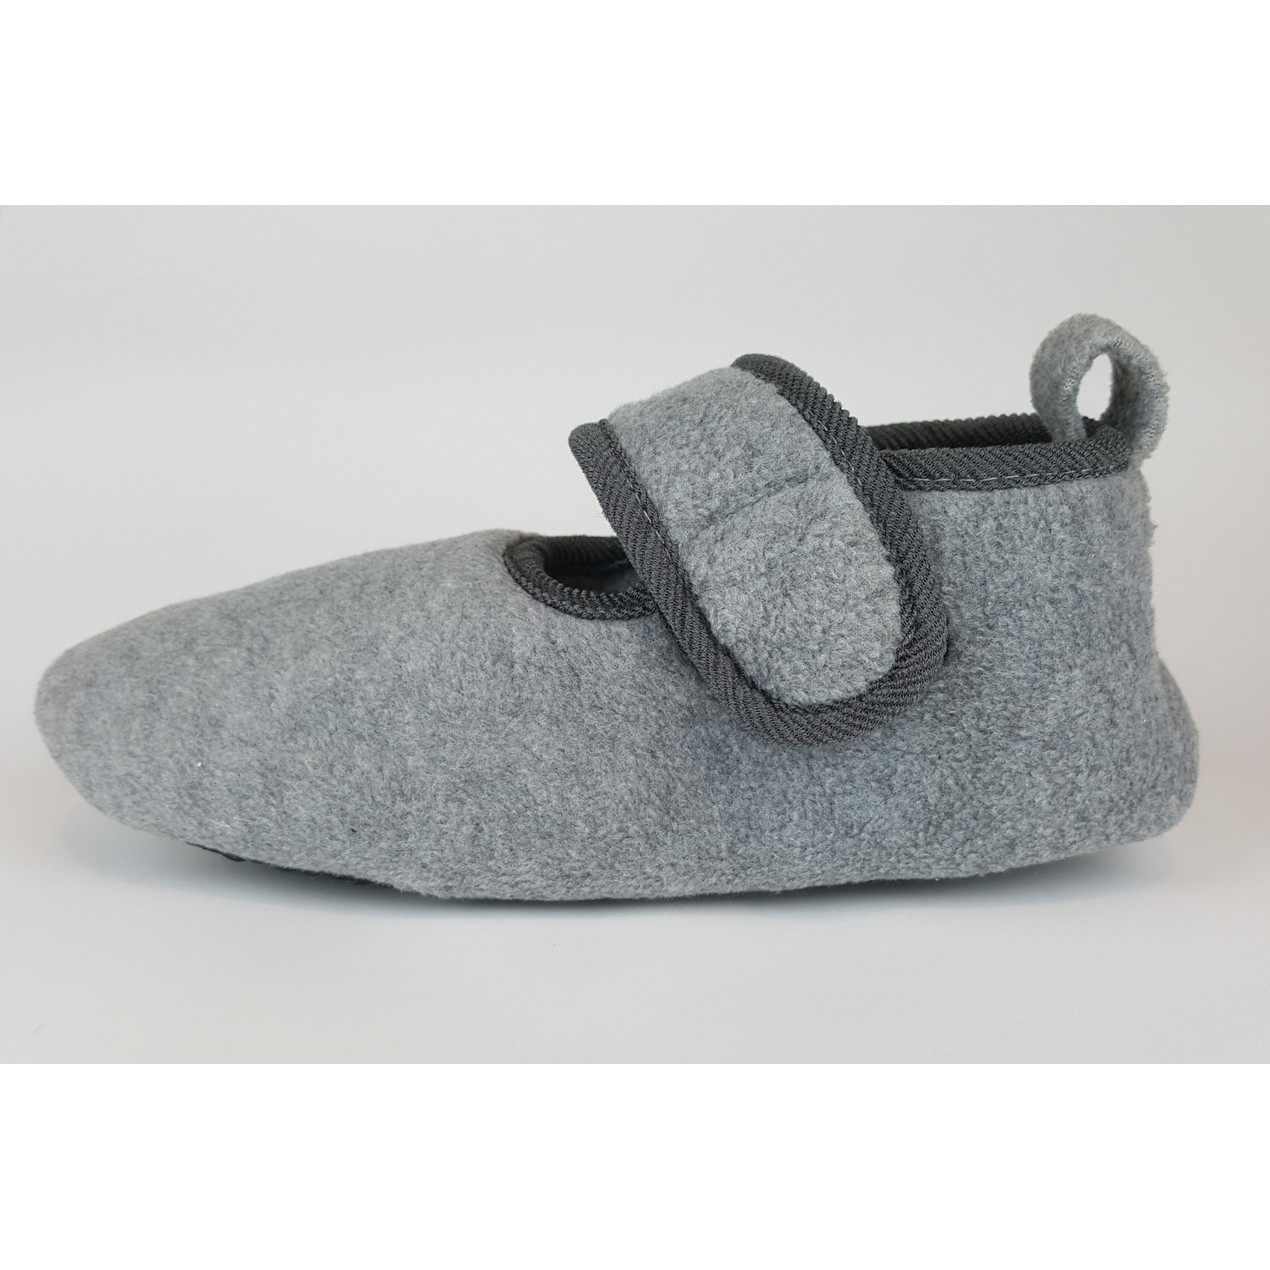 Slippers With Lavatech Technology